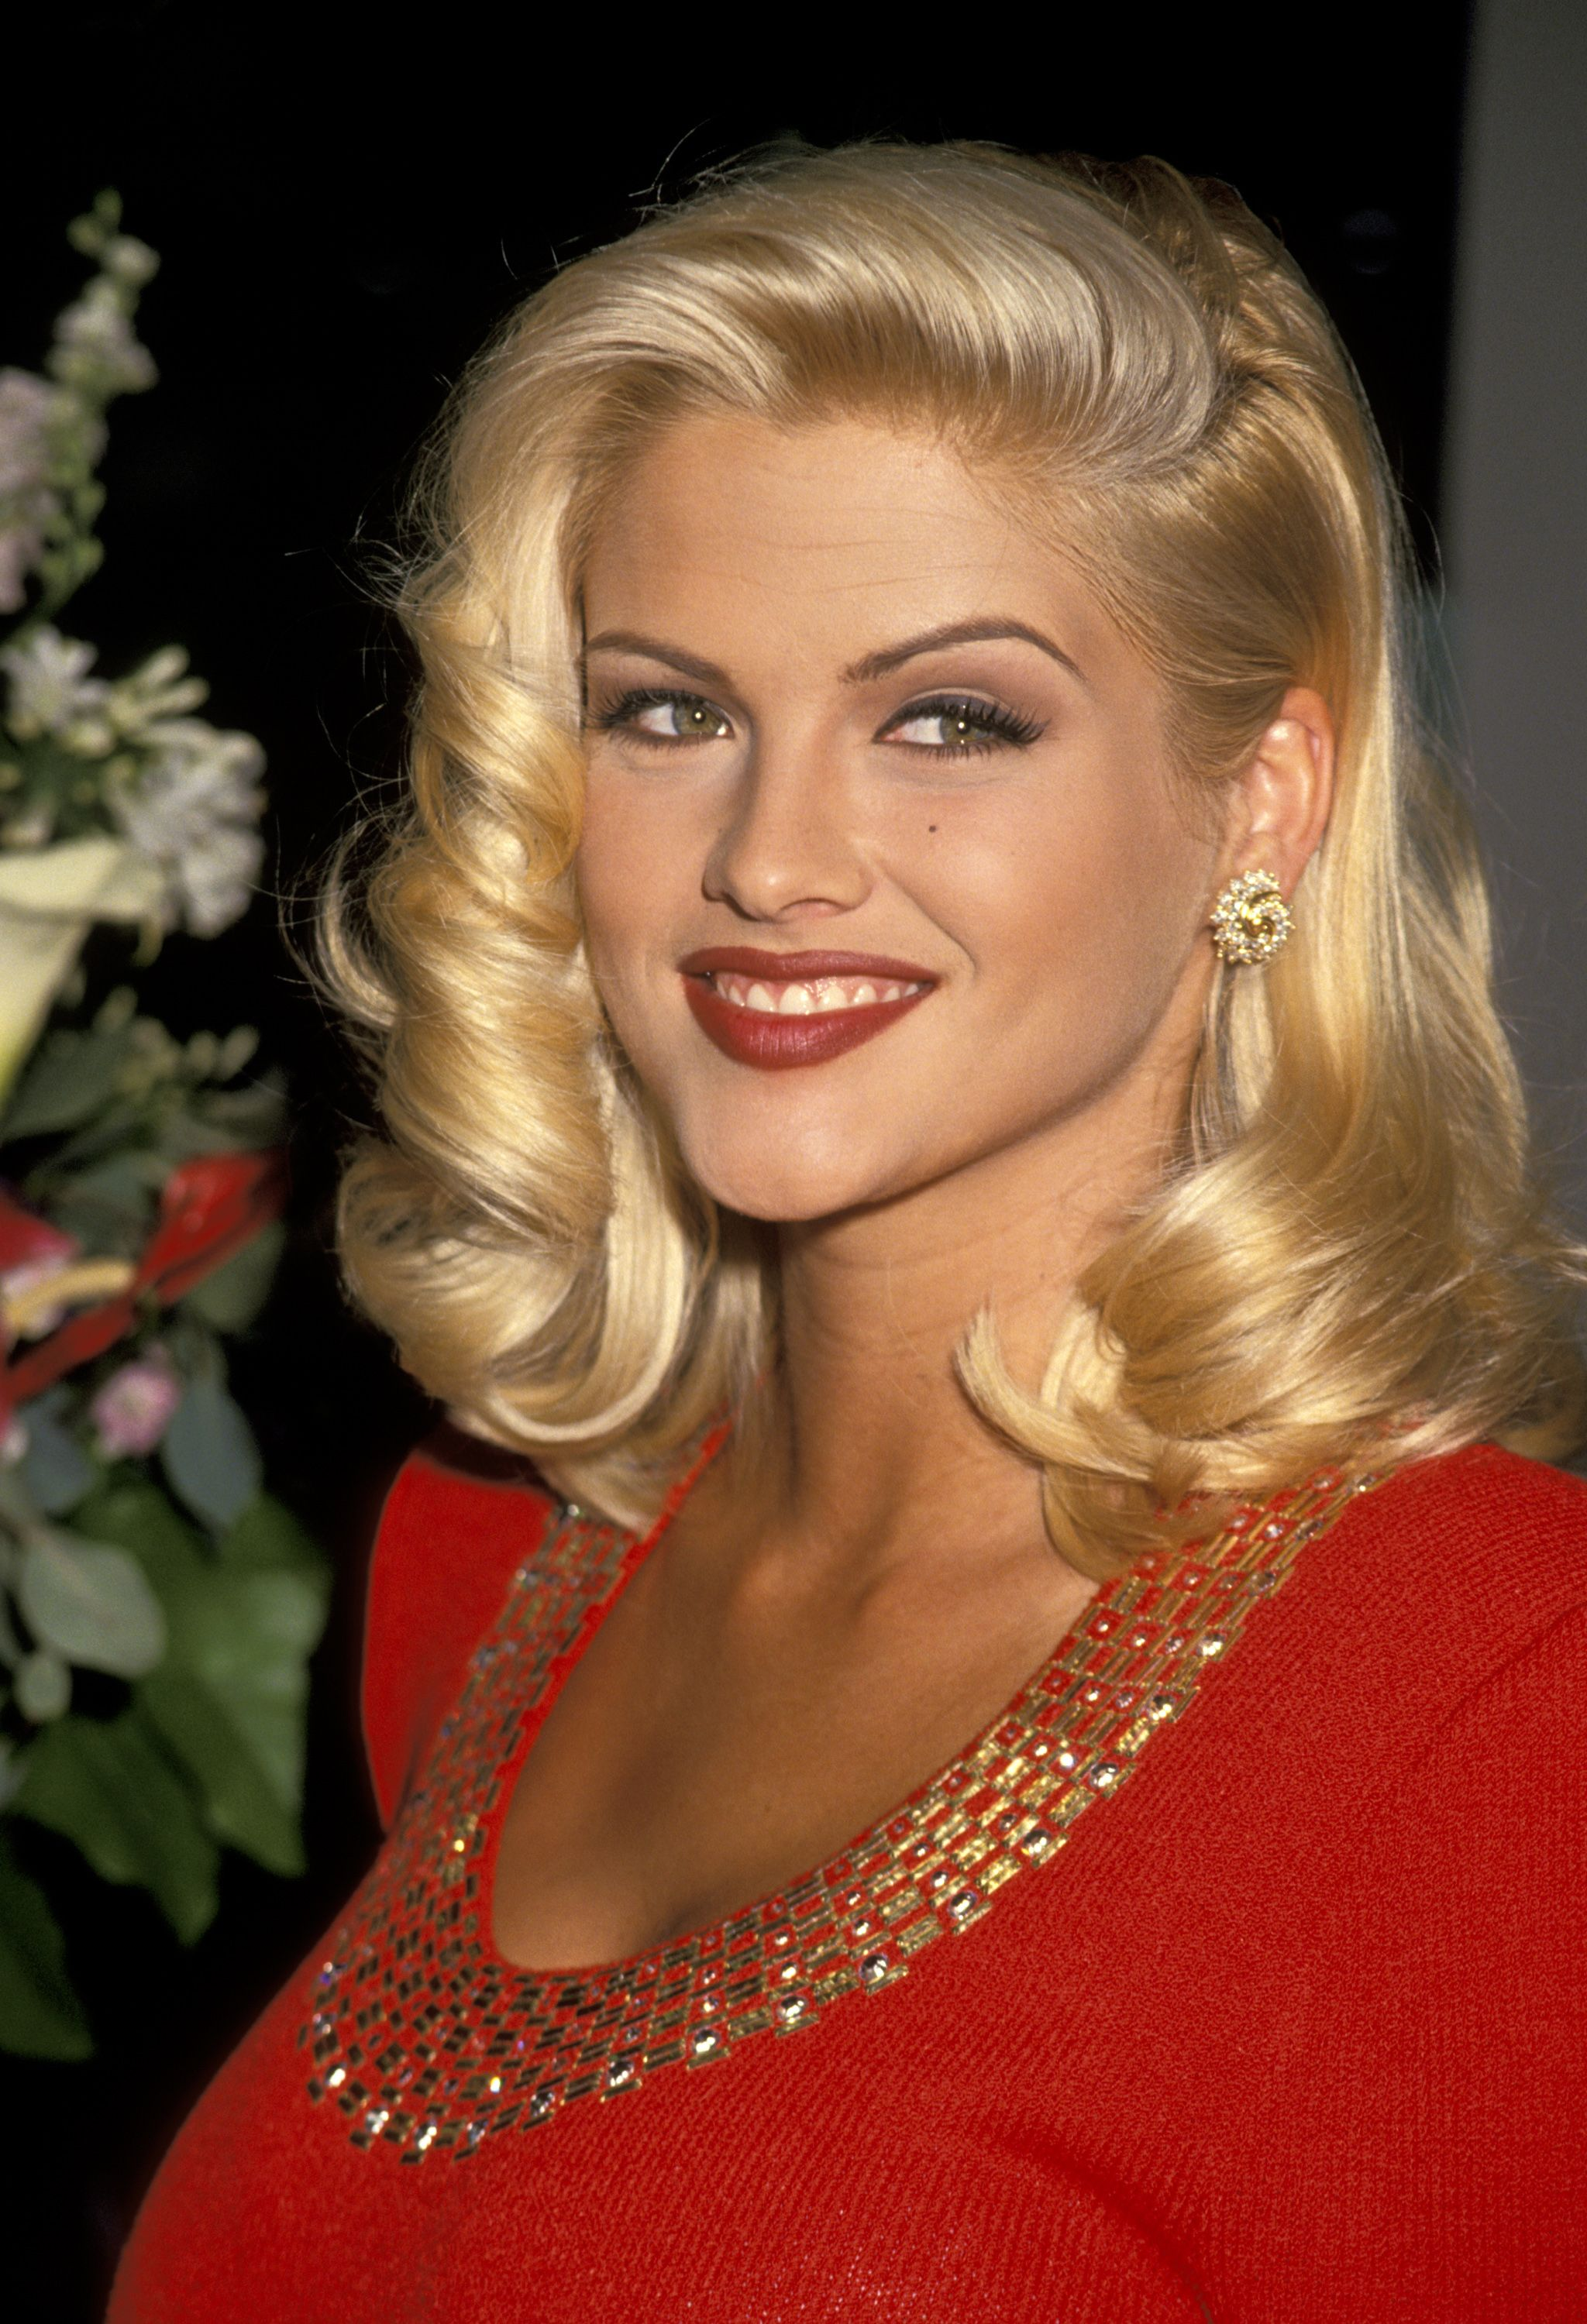 Anna Nicole Smith at the Video Software Dealers Association Convention in Las Vegas in 1993 | Source: Getty Images